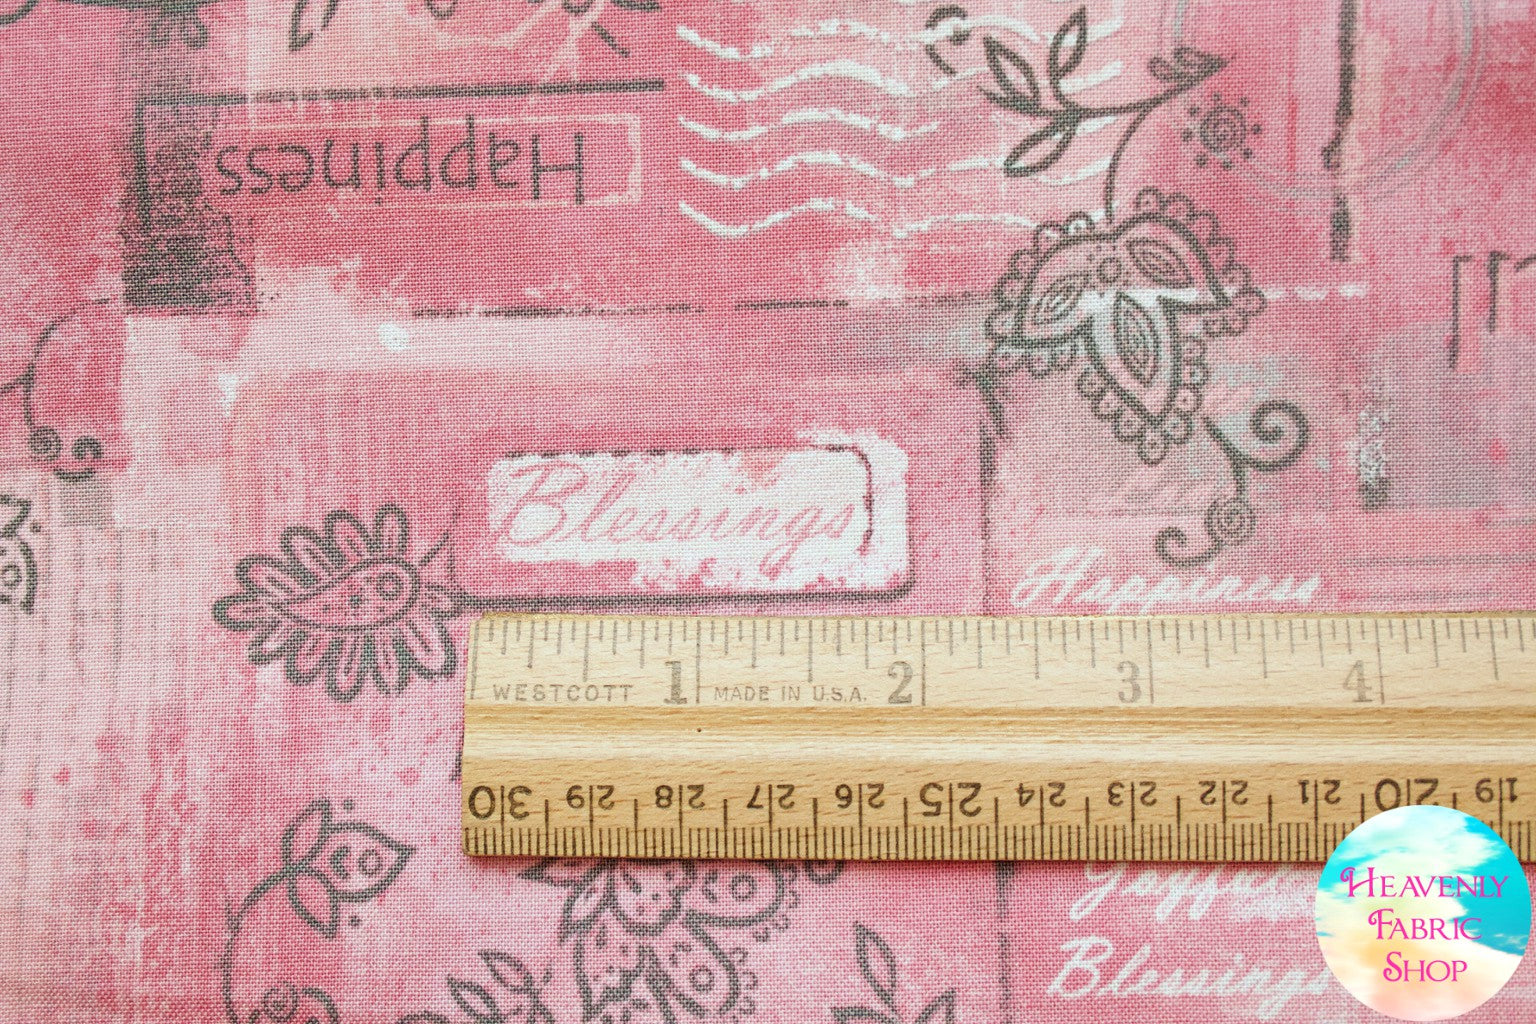 Soulful Shades of Pink Inspirational Butterflies Cotton Fabric